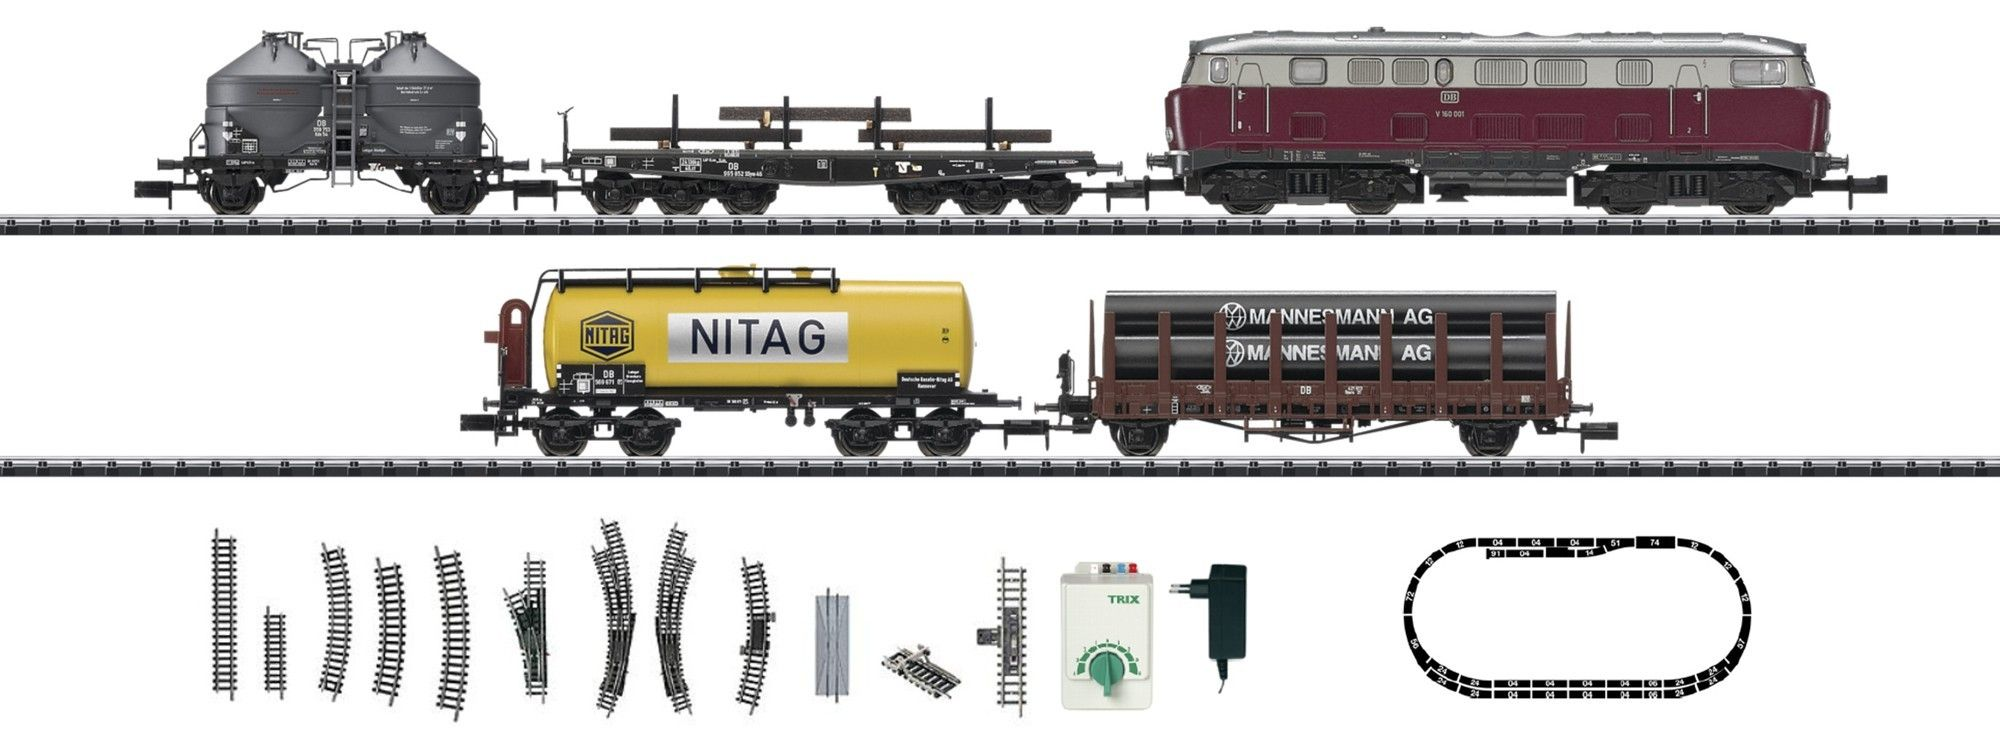 N Scale - Minitrix - 11130 - Freight Train, Diesel, Europe, Epoch III - Deutsche Bahn